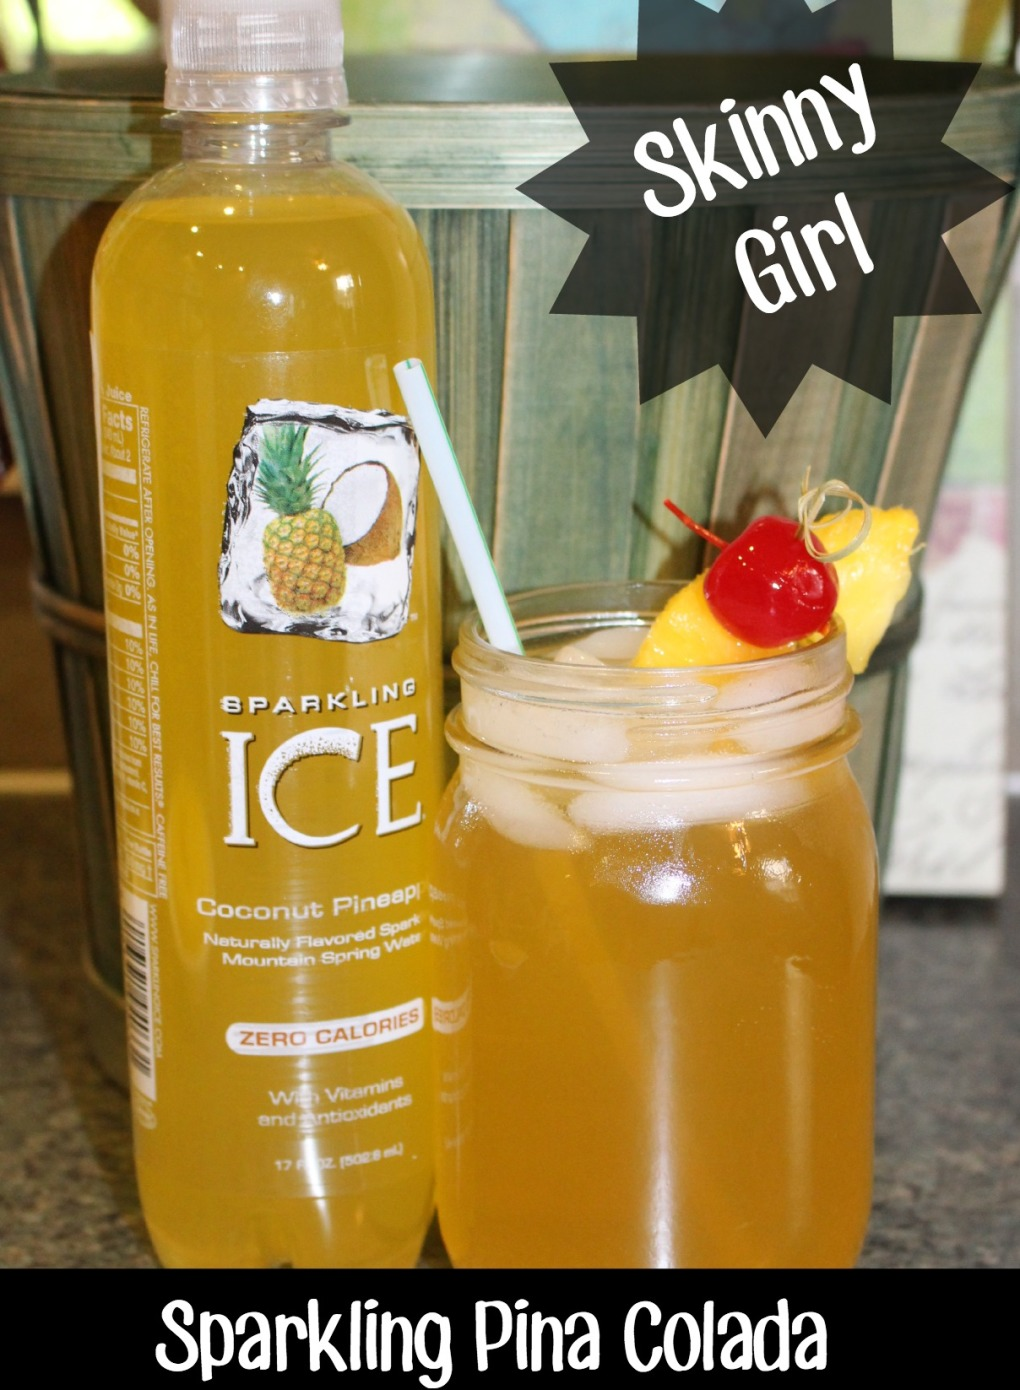 Summer Drink Series: Skinny Girl Sparkling Pina Colada!